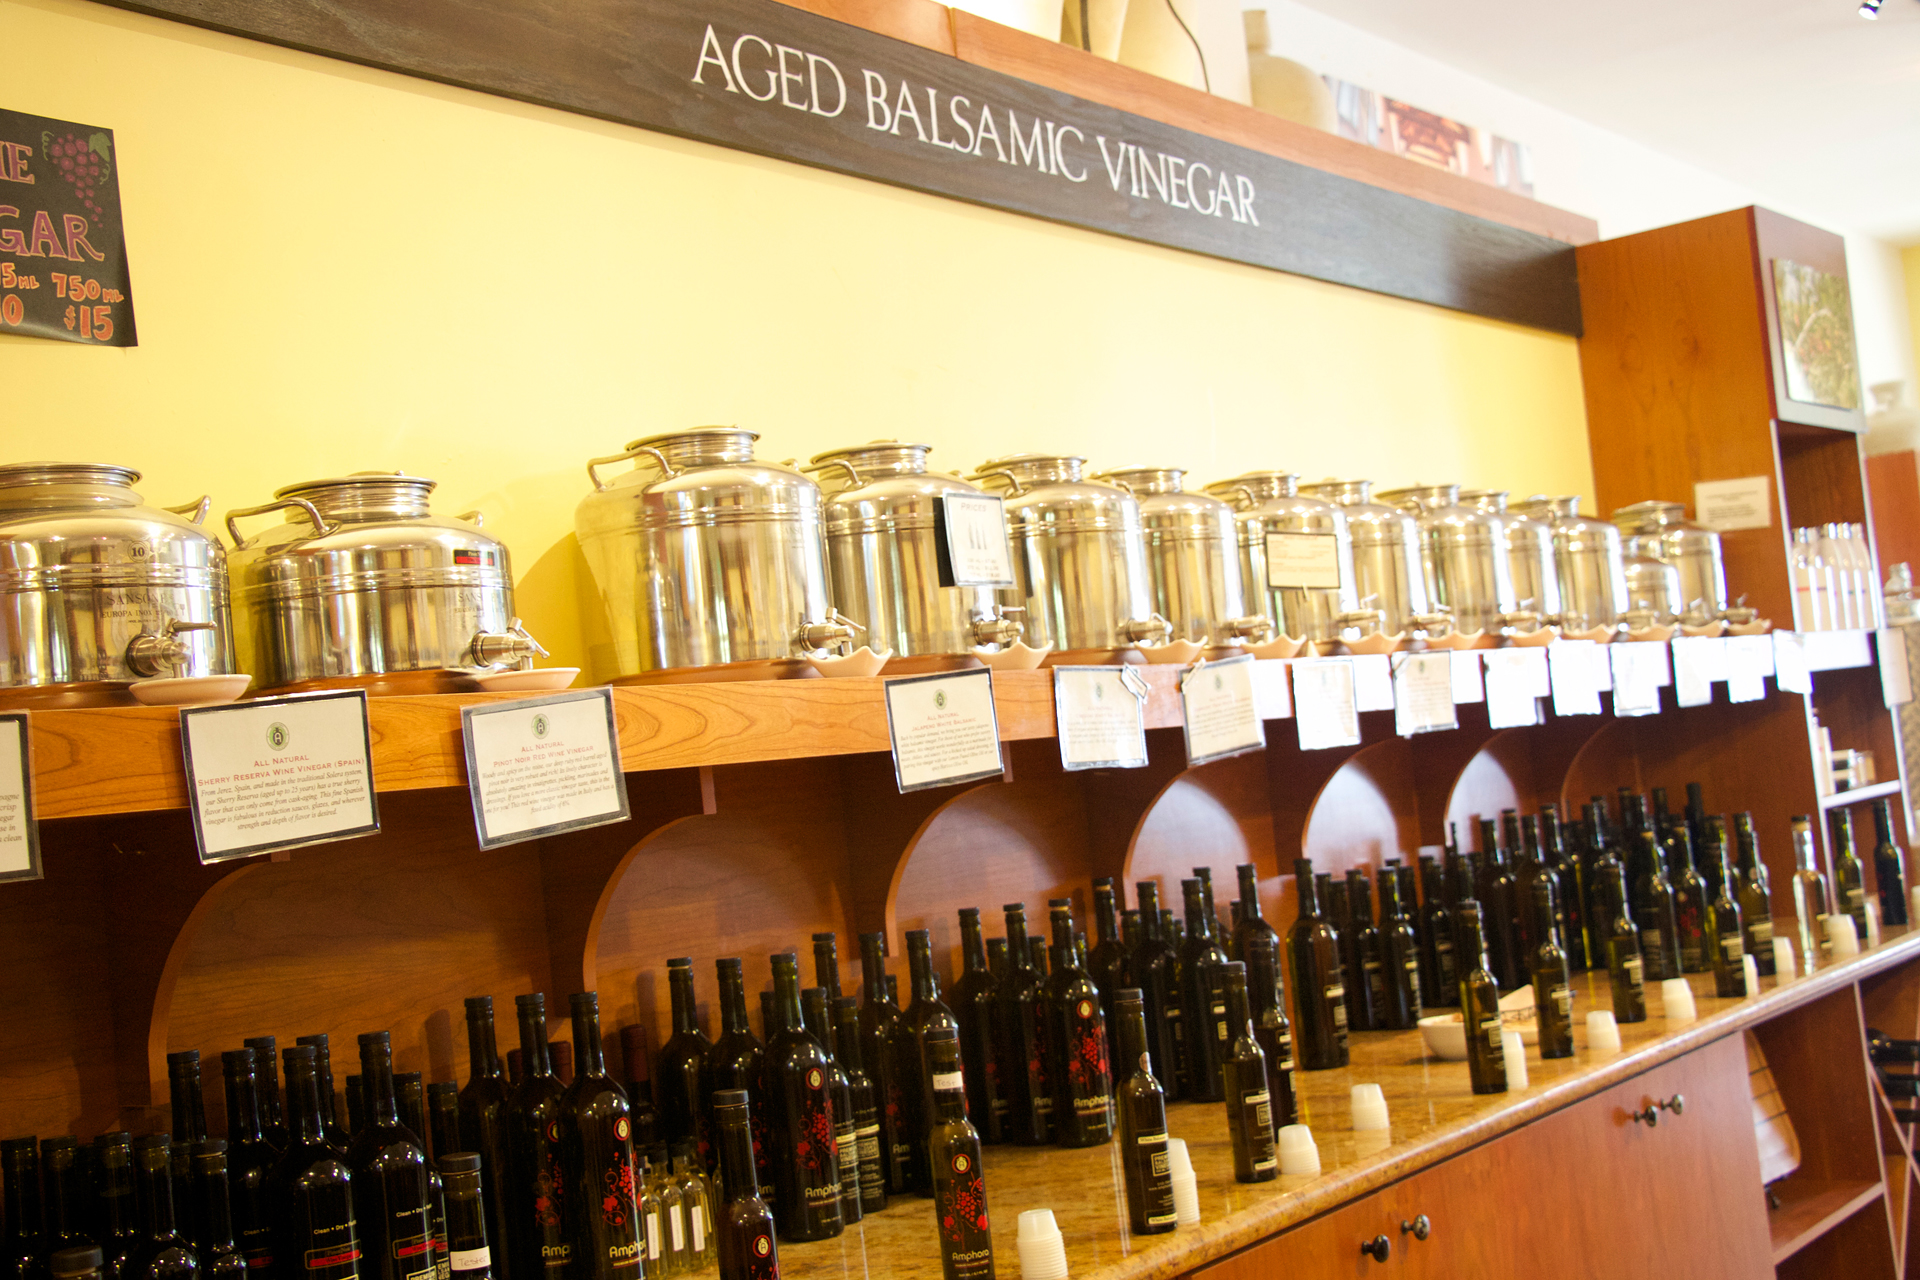 Aged balsamic and flavored vinegars line the shelves at Amphora.